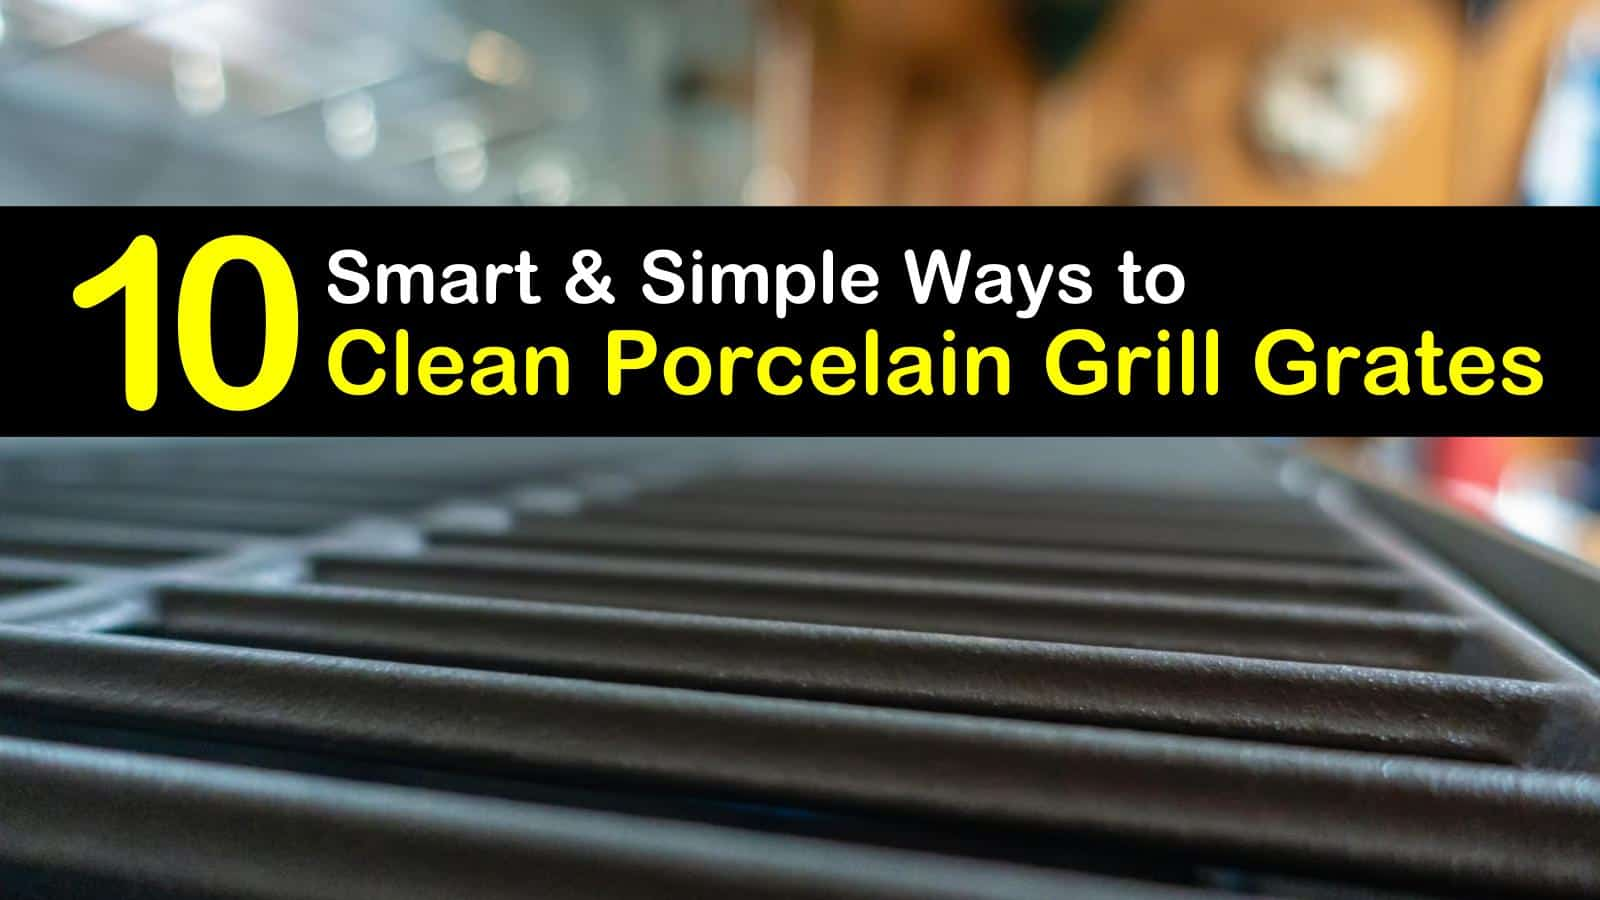 4 Smart & Simple Ways to Clean Porcelain Grill Grates